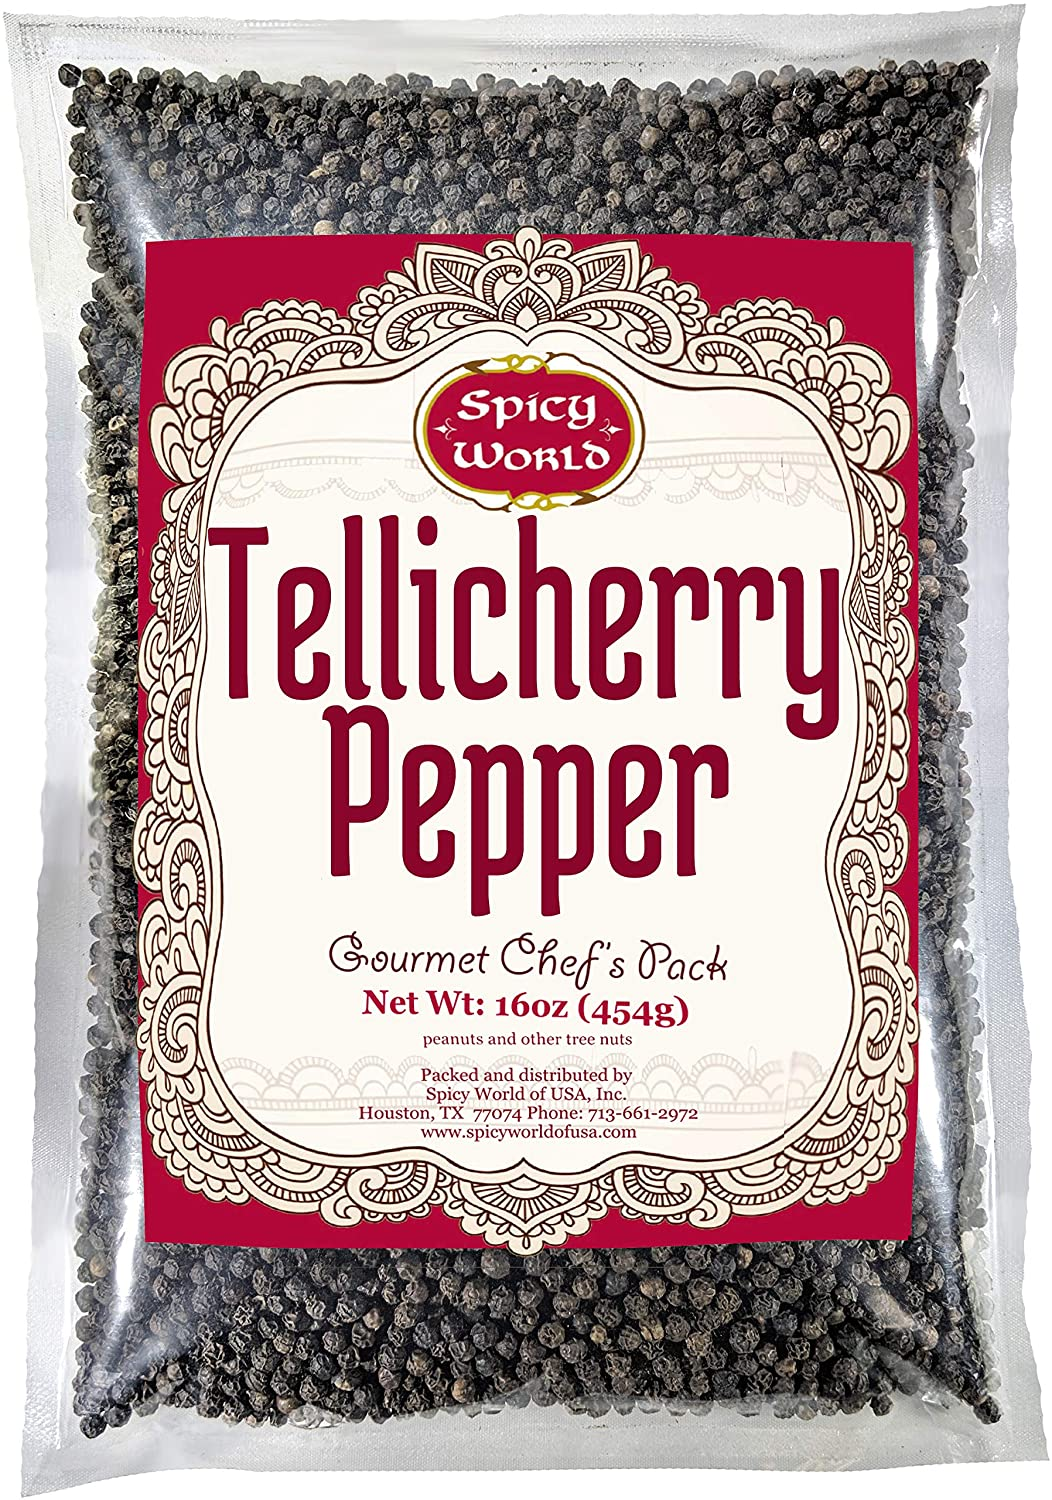 Spicy World Whole Black Peppercorns Tellicherry 16 Oz - Steam Sterilized -Non-GMO Black Pepper - Grinder Refill